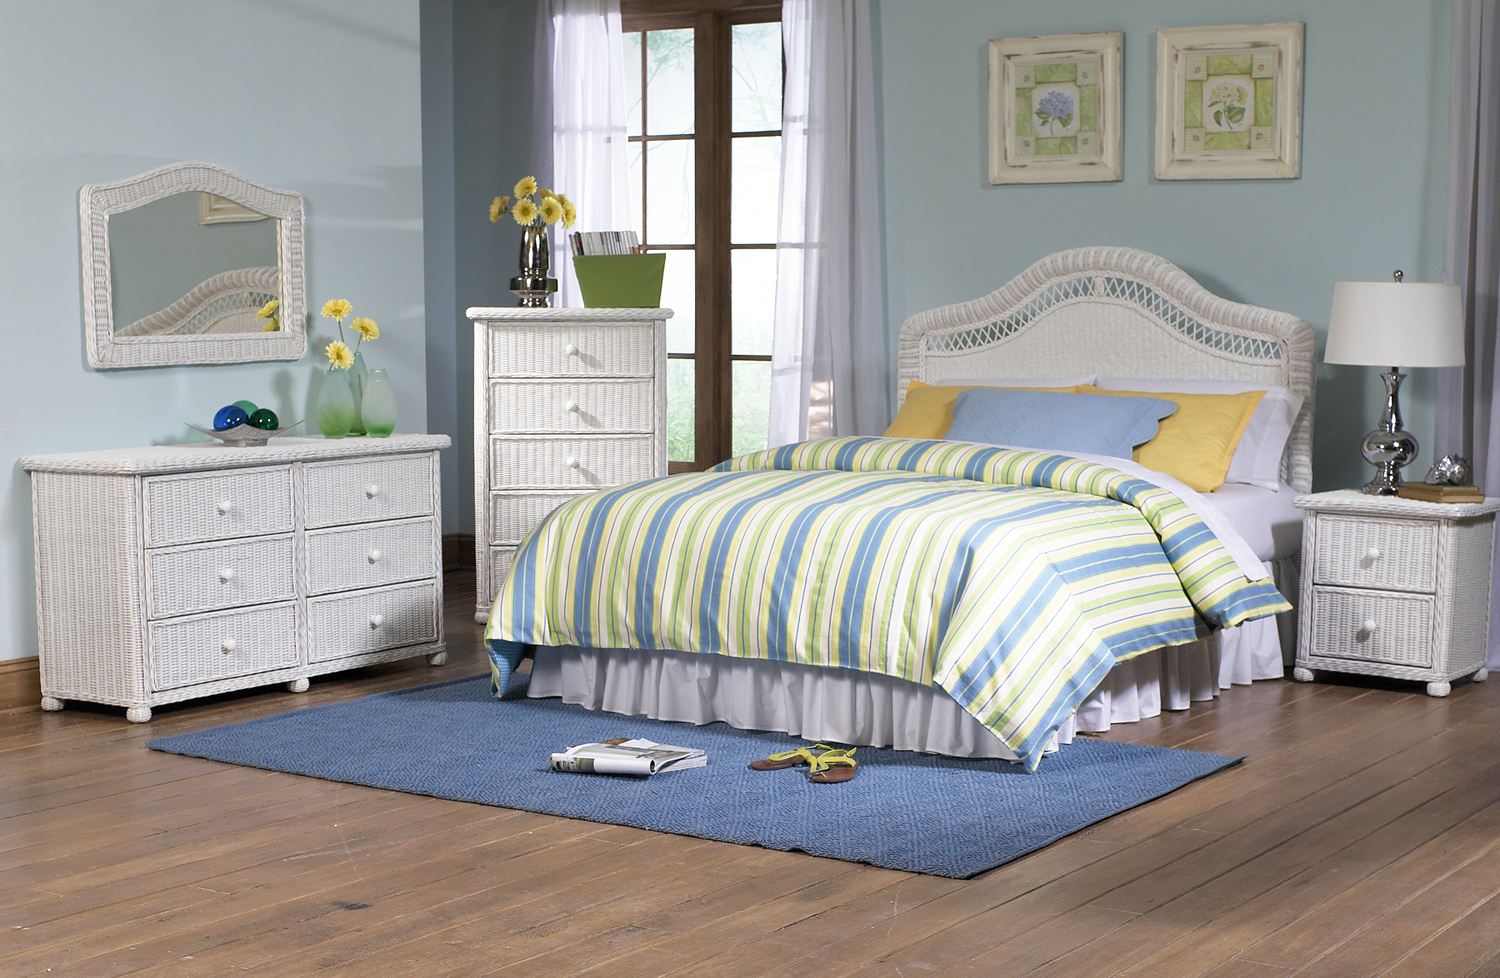 wicker bedroom set wicker bedroom set 13868